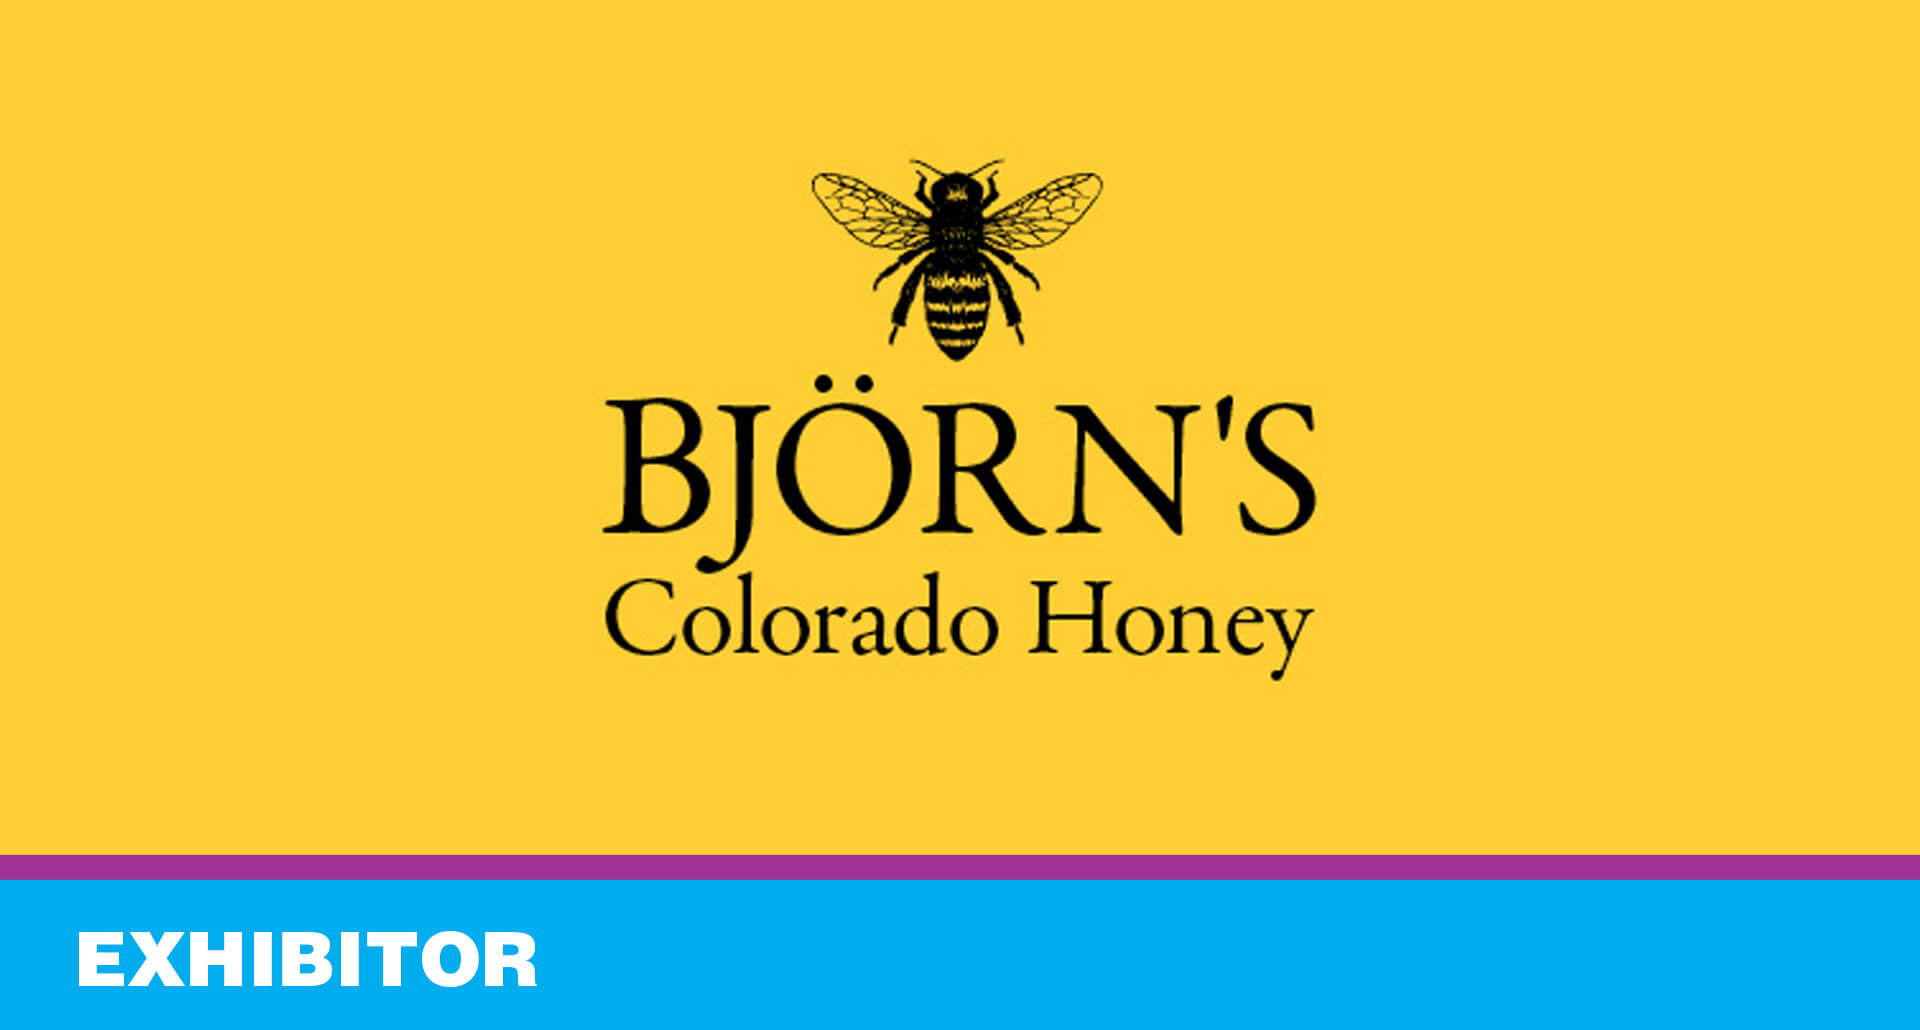 Bjorns Colorado Honey